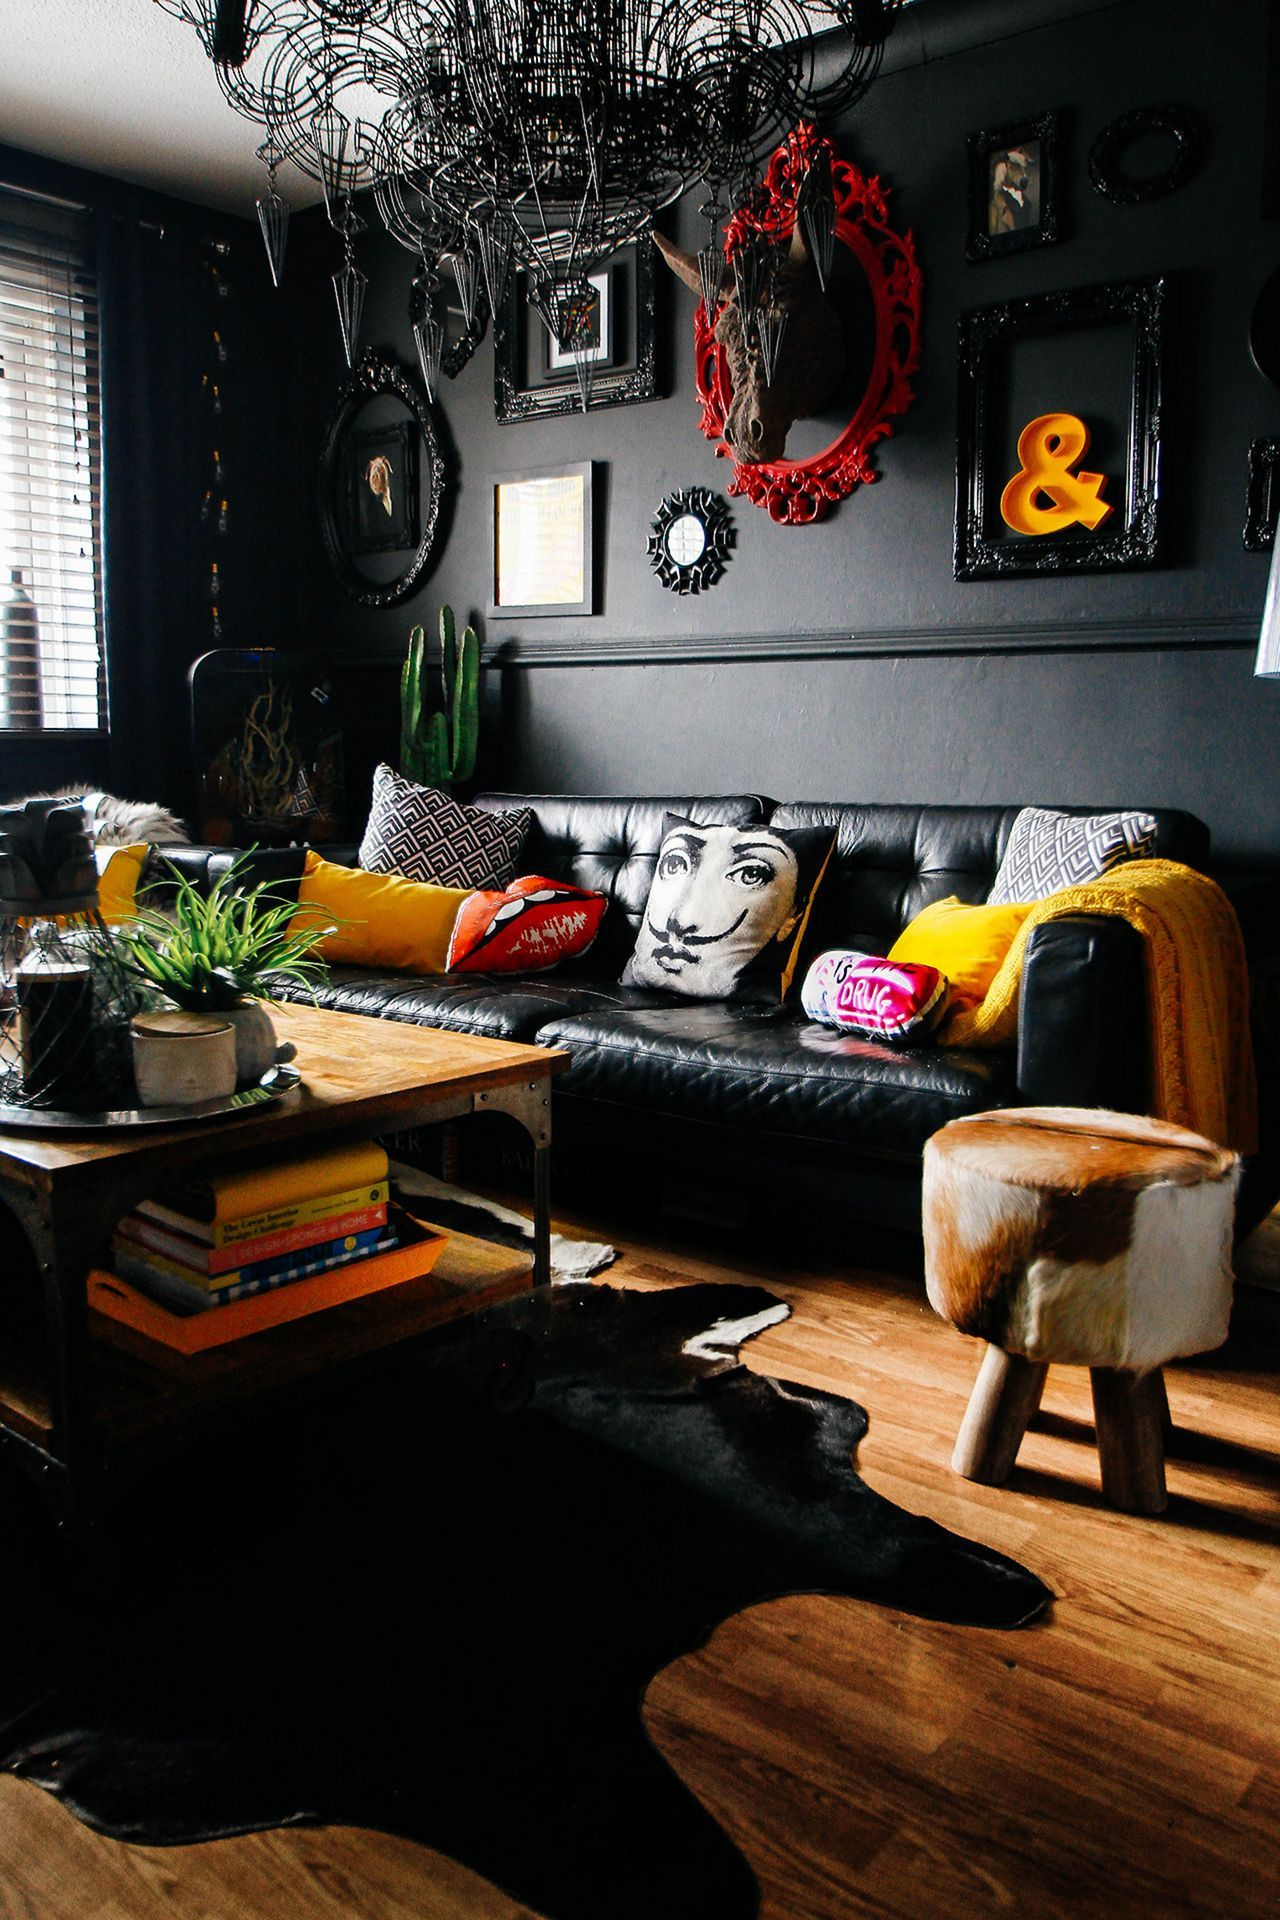 40+ Best Black and White Interior Design Ideas / FresHOUZ.com